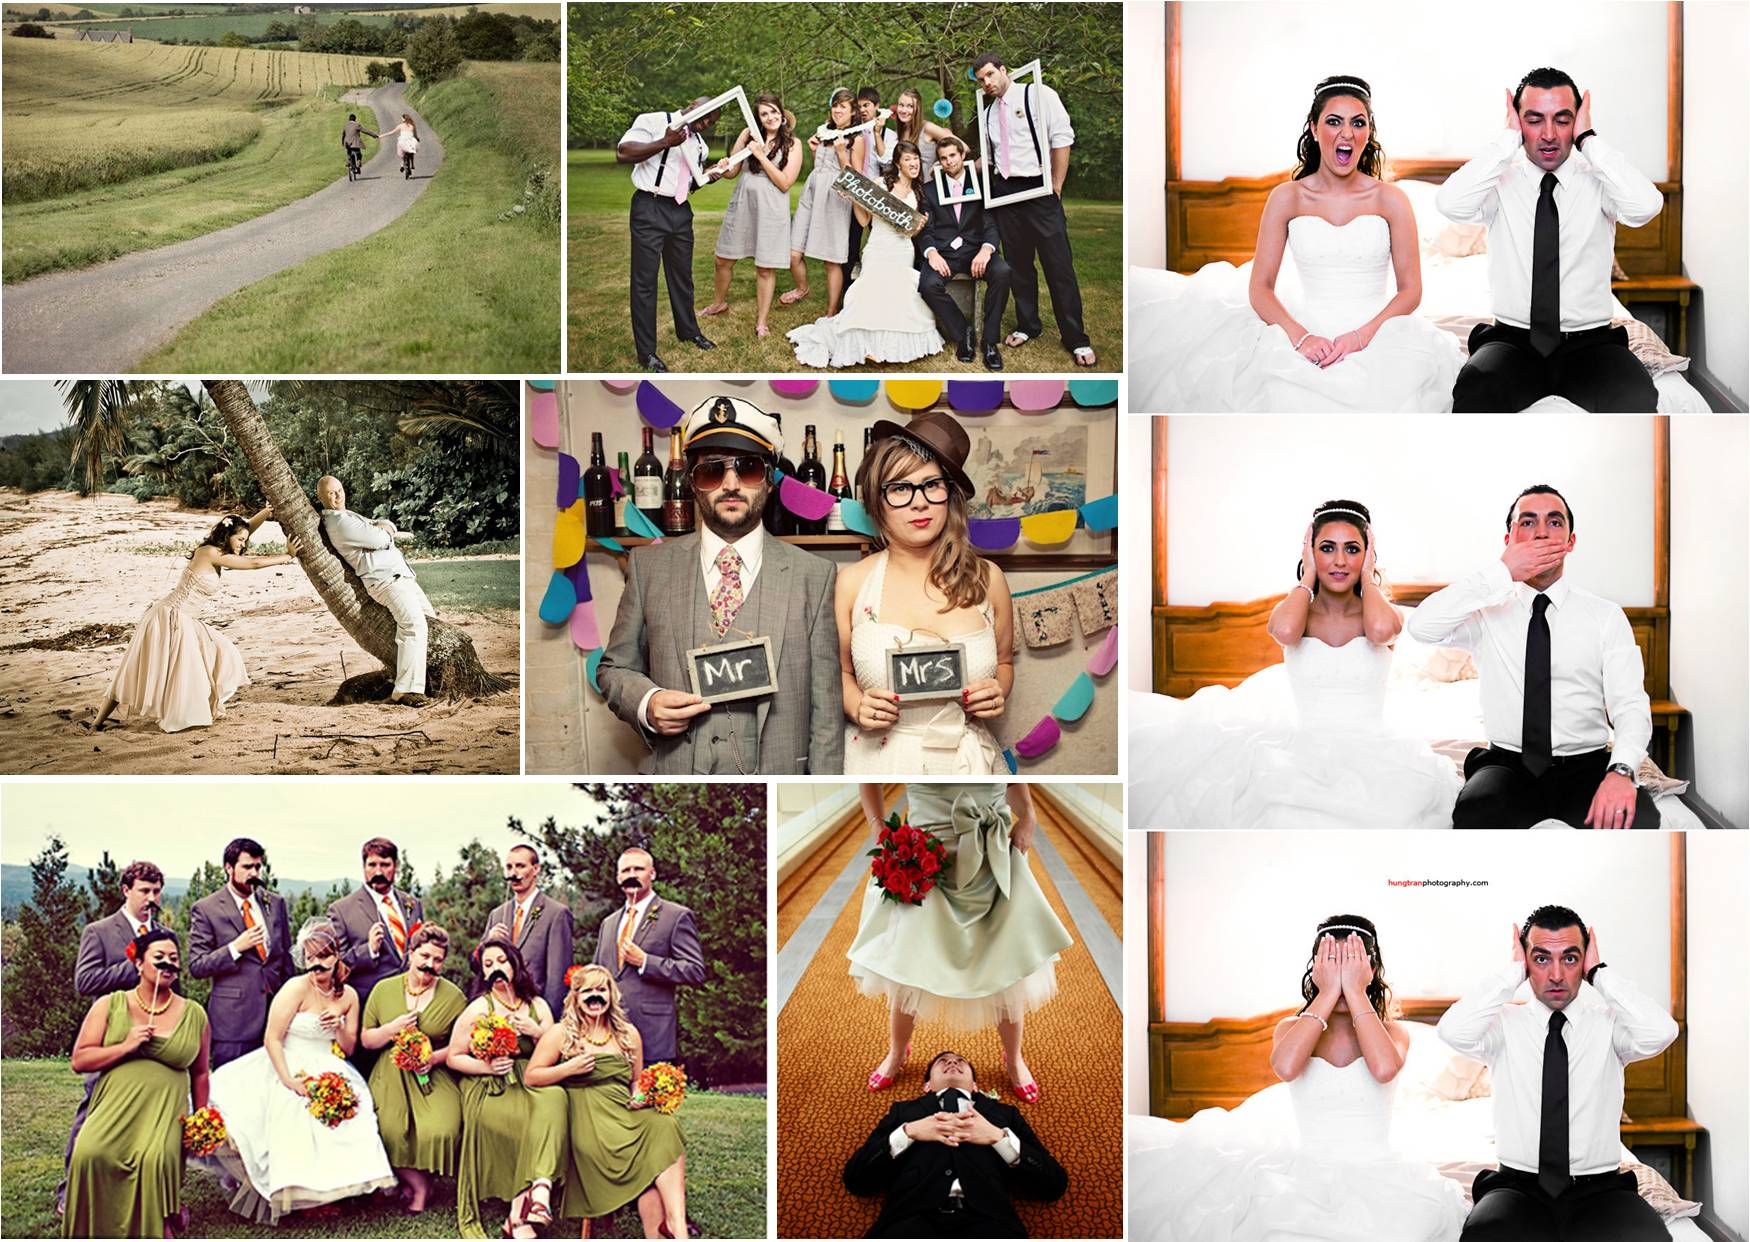 funny_wedding_photography_ideas.jpg